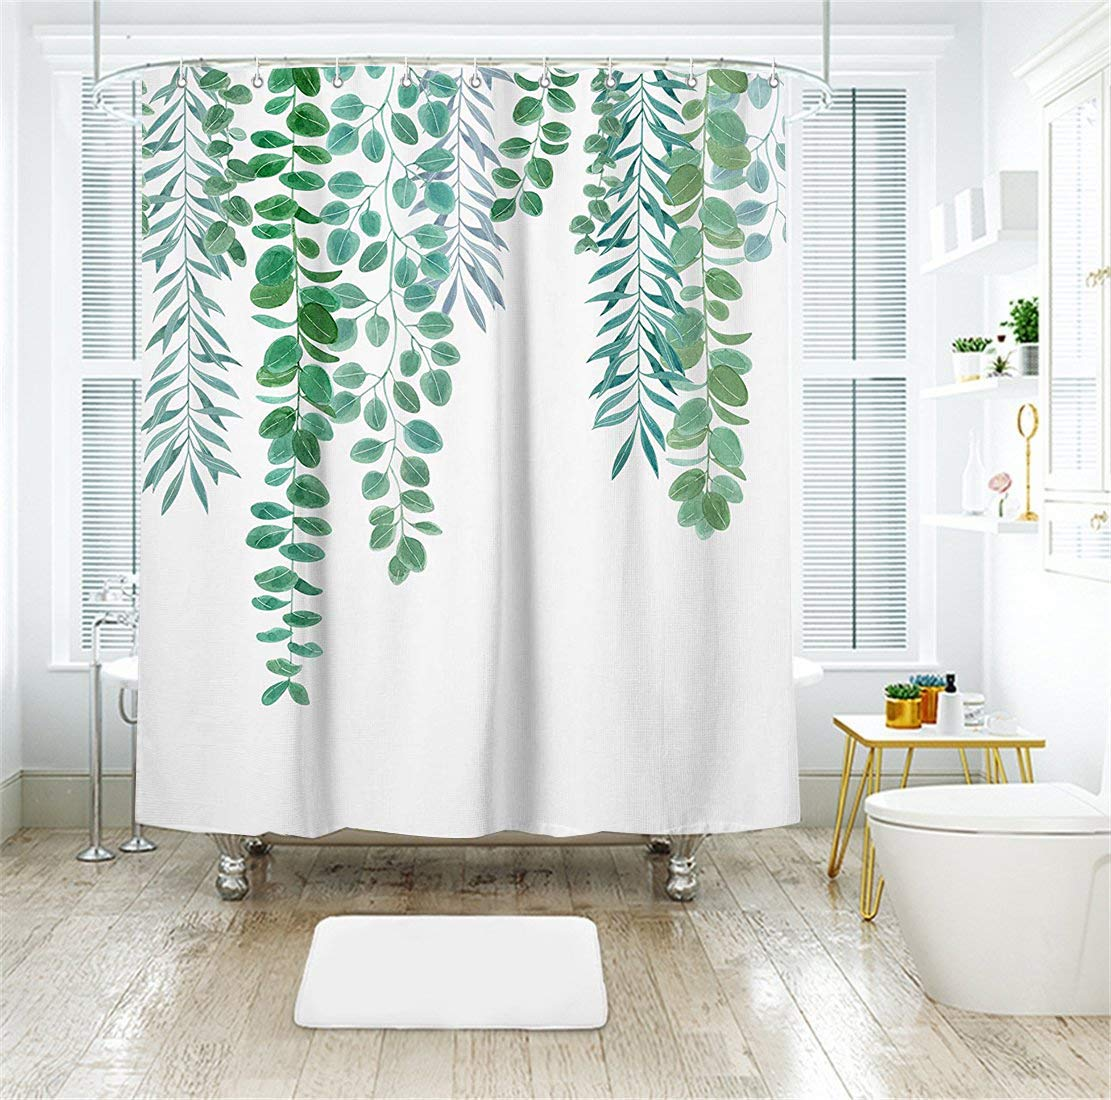 Livilan Simple Green Leaves Shower Curtain Set 70.8'' x 70.8'', Decorative Waterproof Quick Dry Thick Polyester Fabric Bathroom Curtain